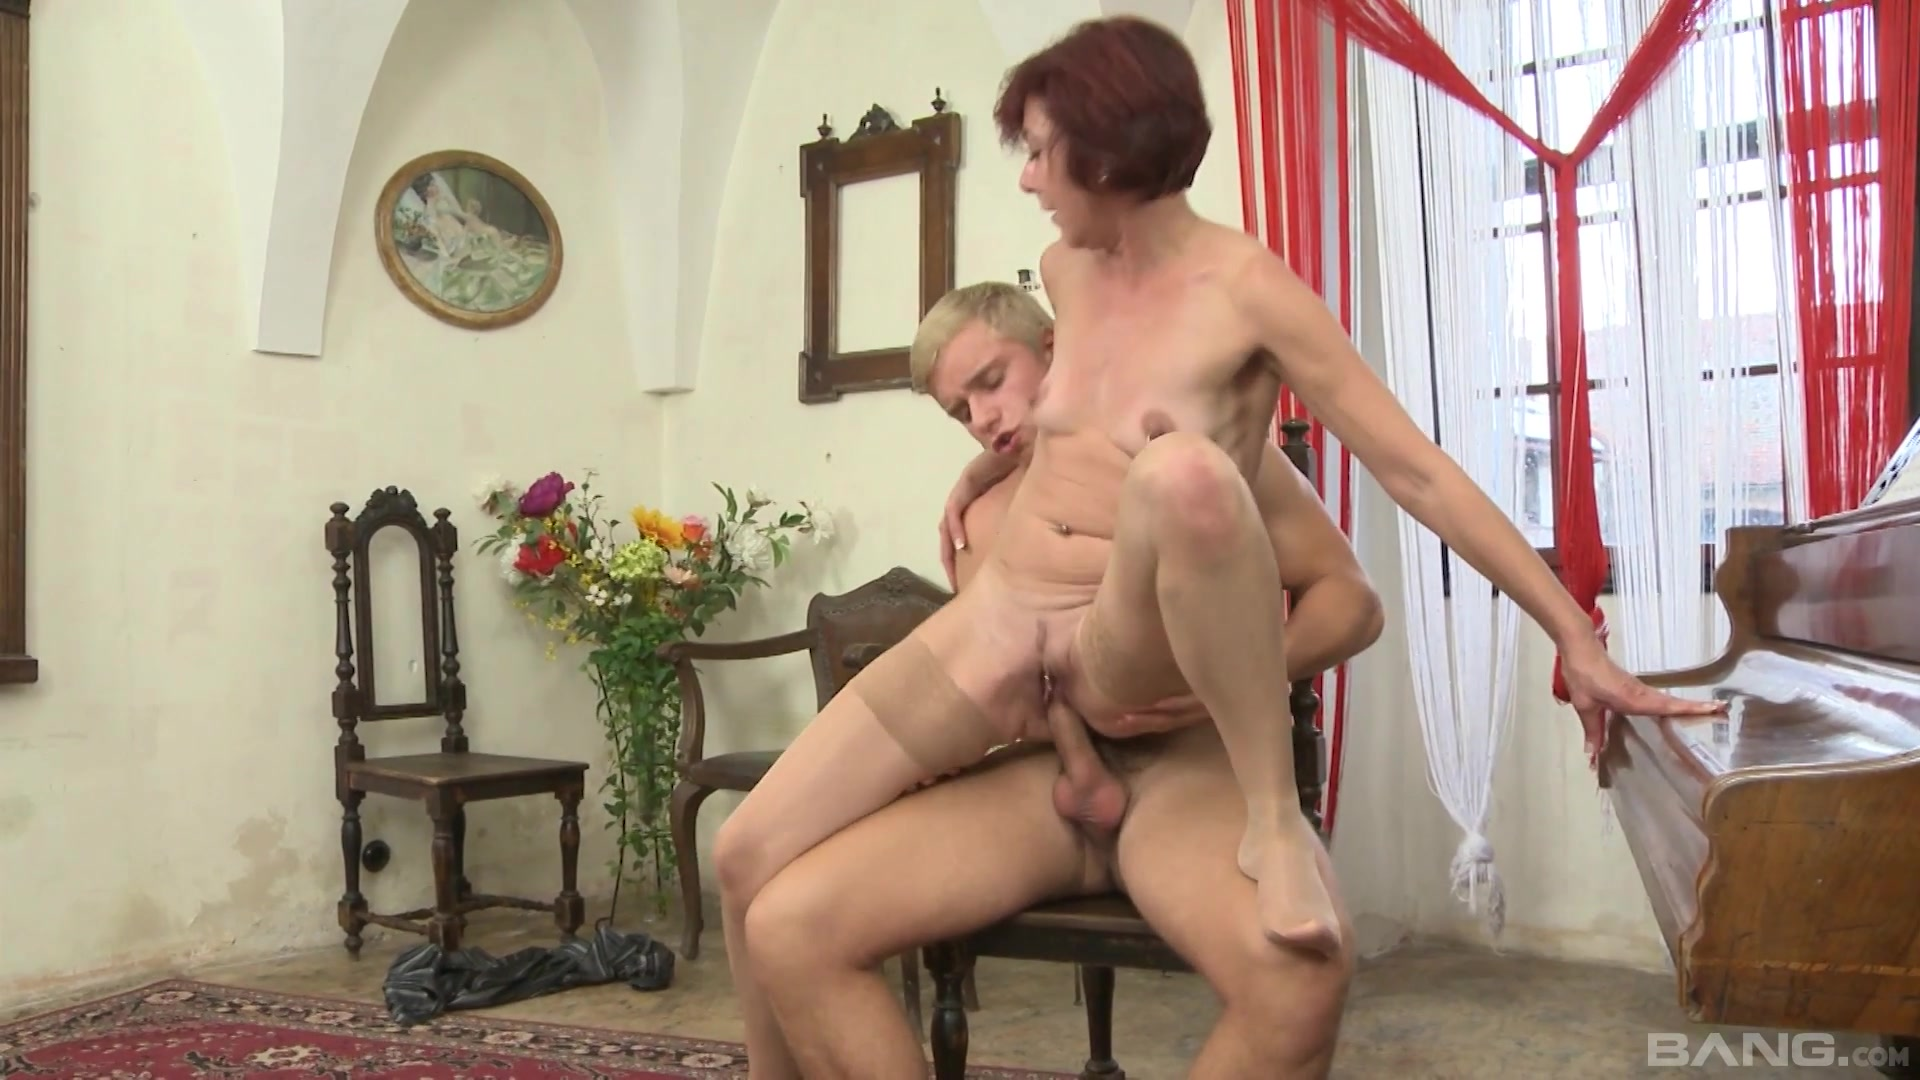 Auntie loves riding the young cock of her nephew